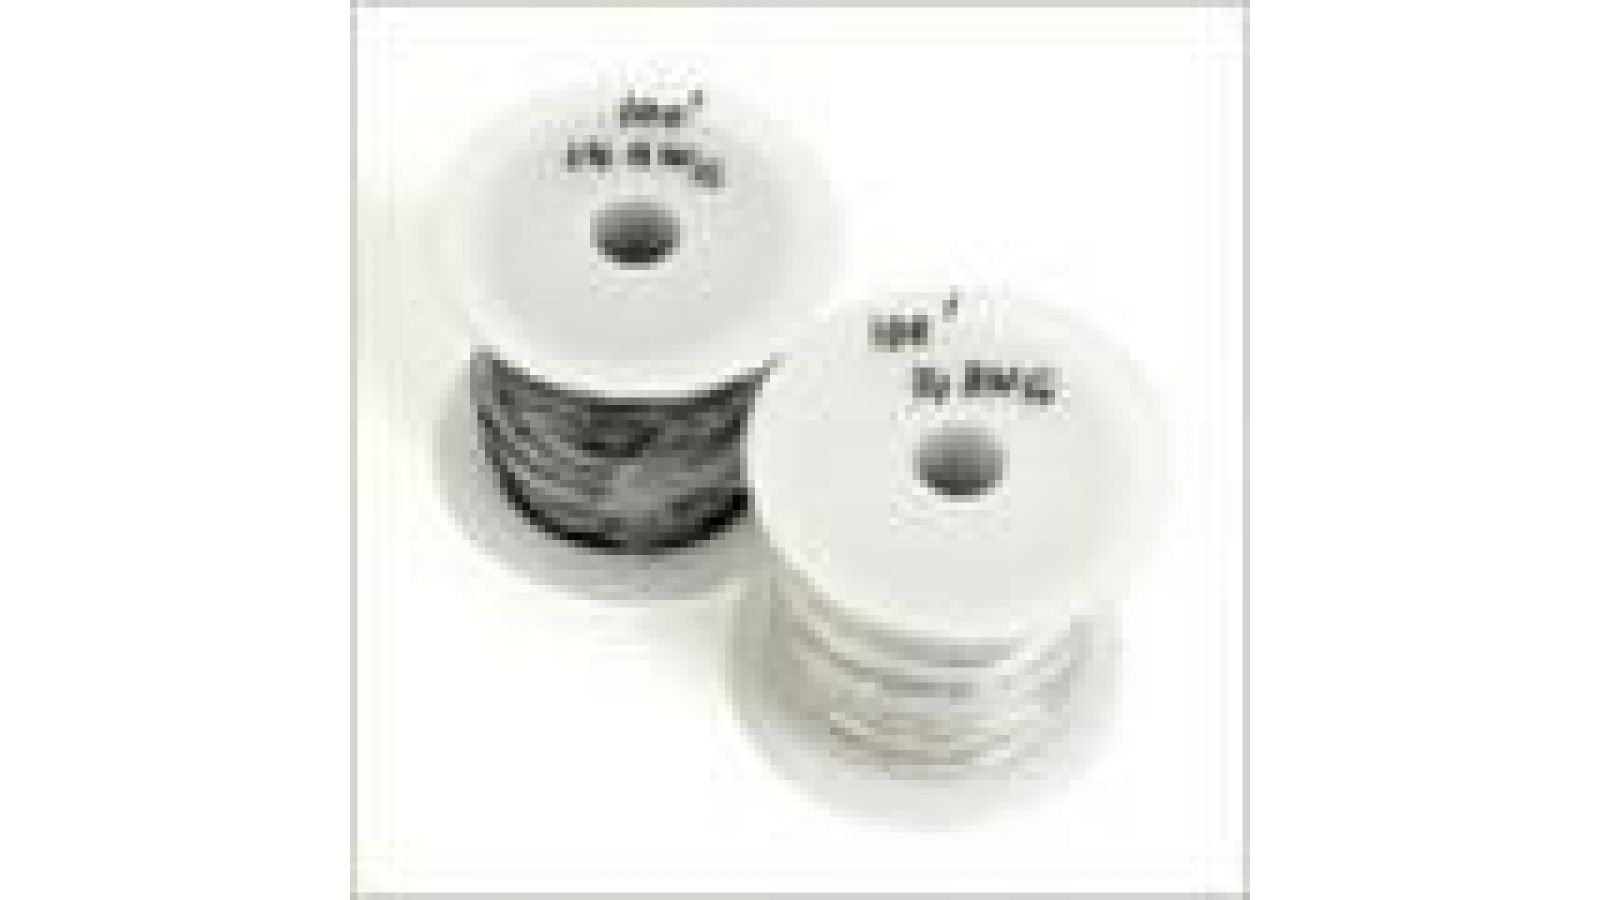 EXTENSION WIRE (TCu14-XXX-B/-W, TCu12-XXX-B/-W)